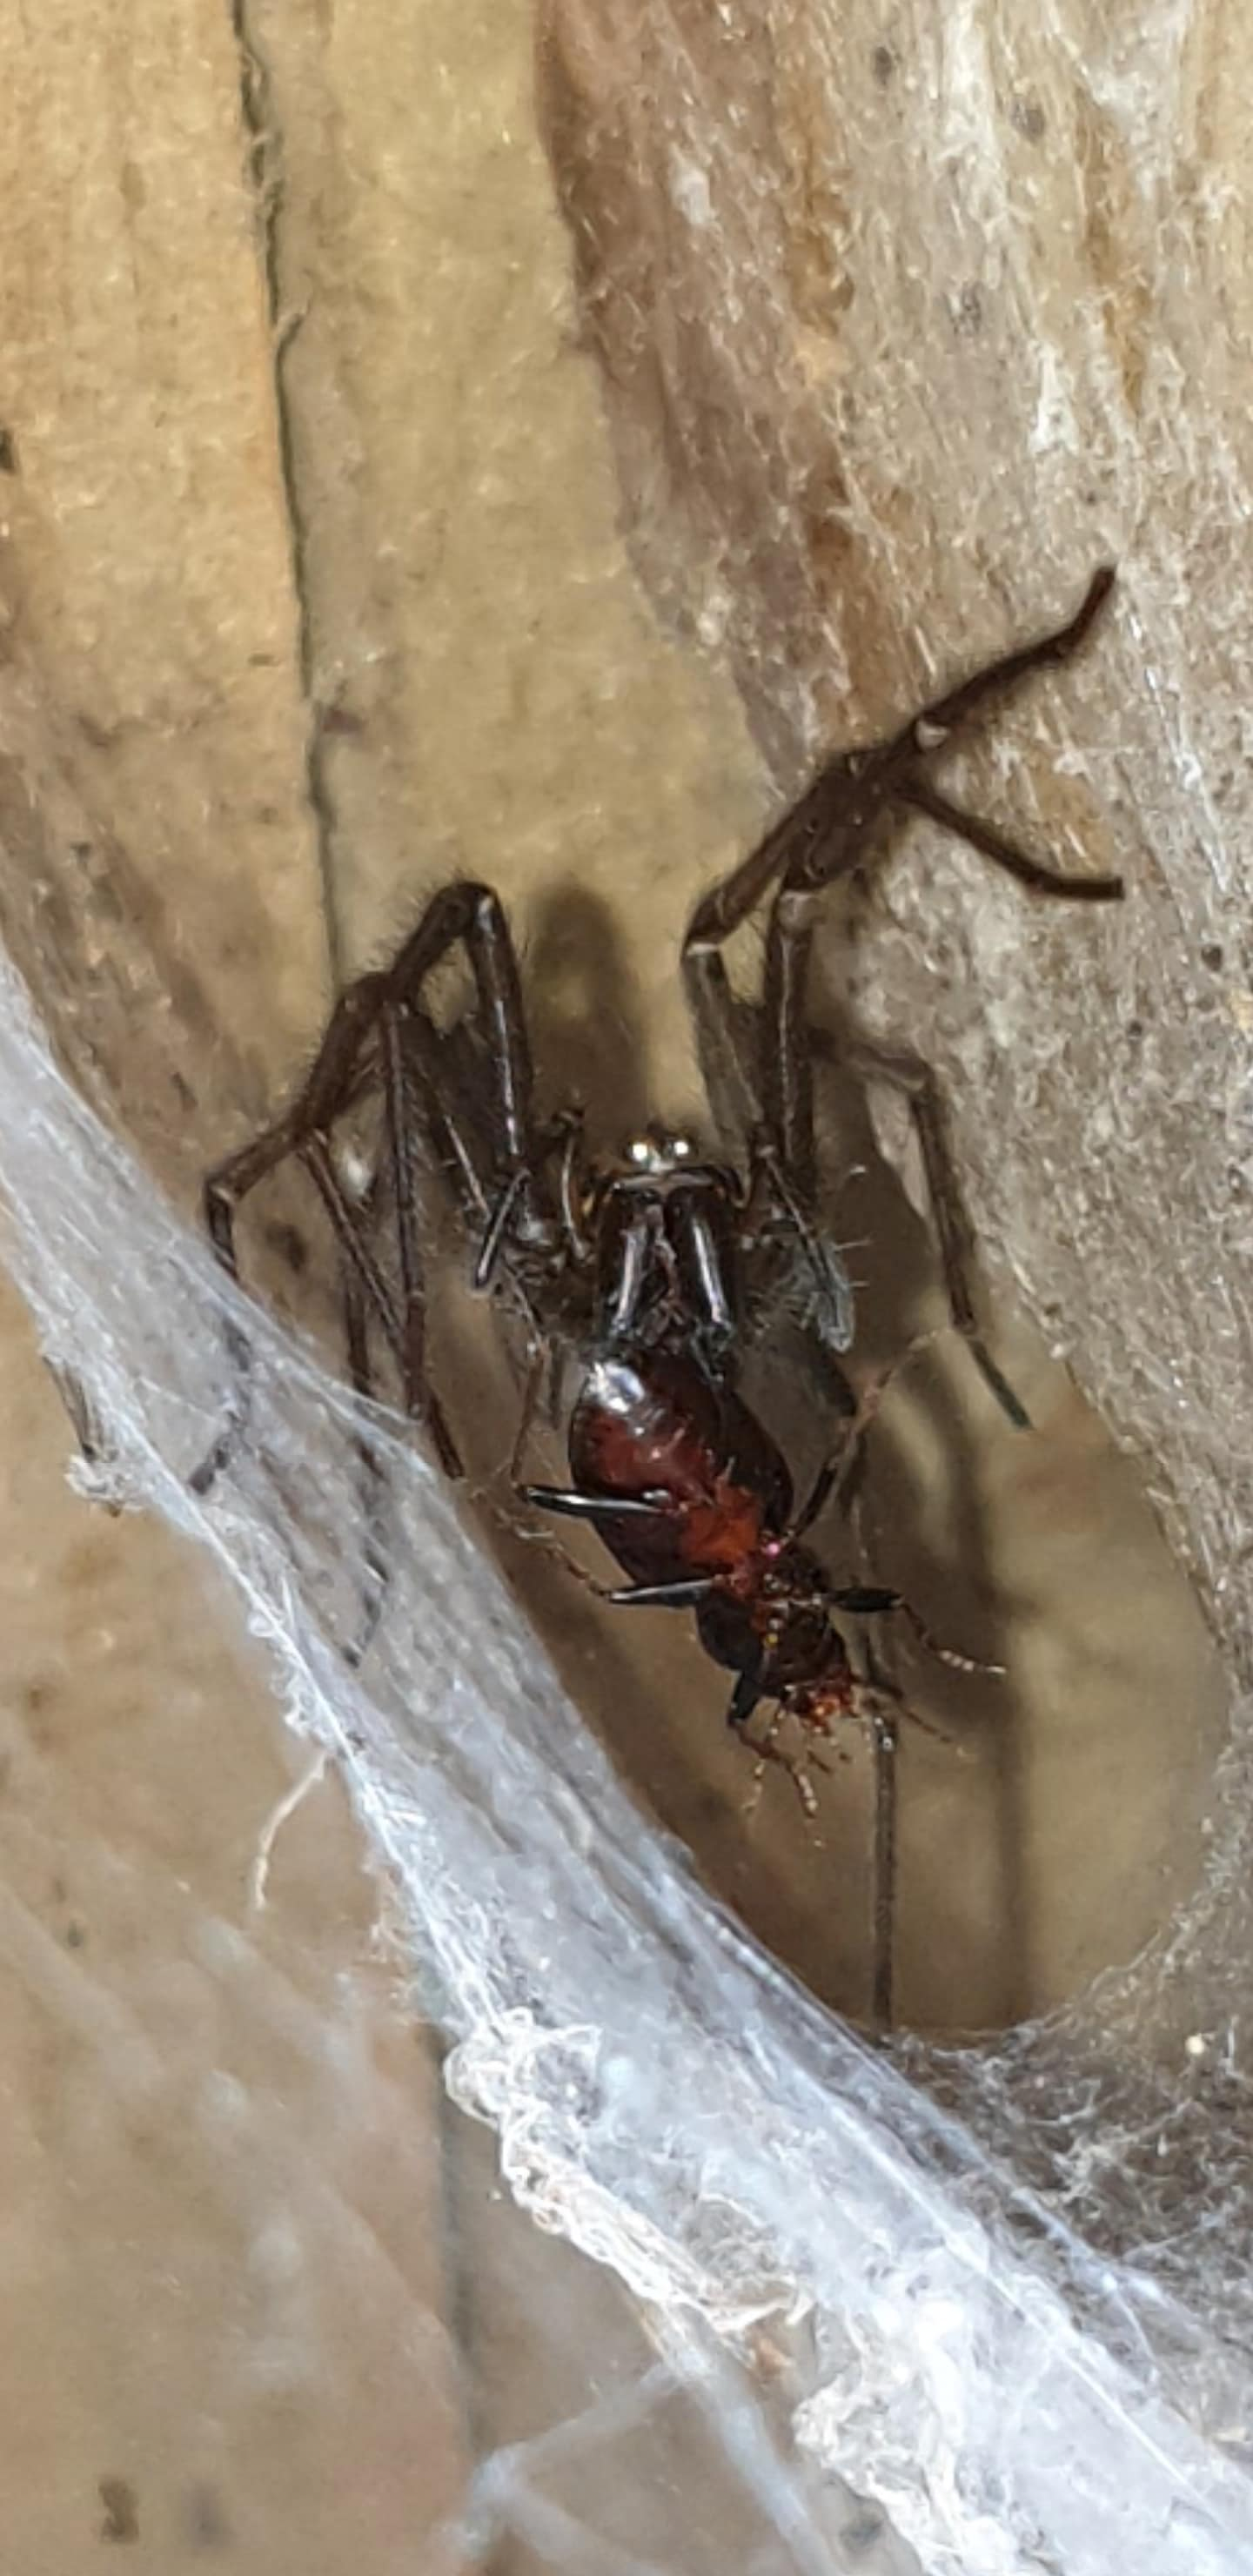 Picture of Eratigena - Eyes,Webs,Prey